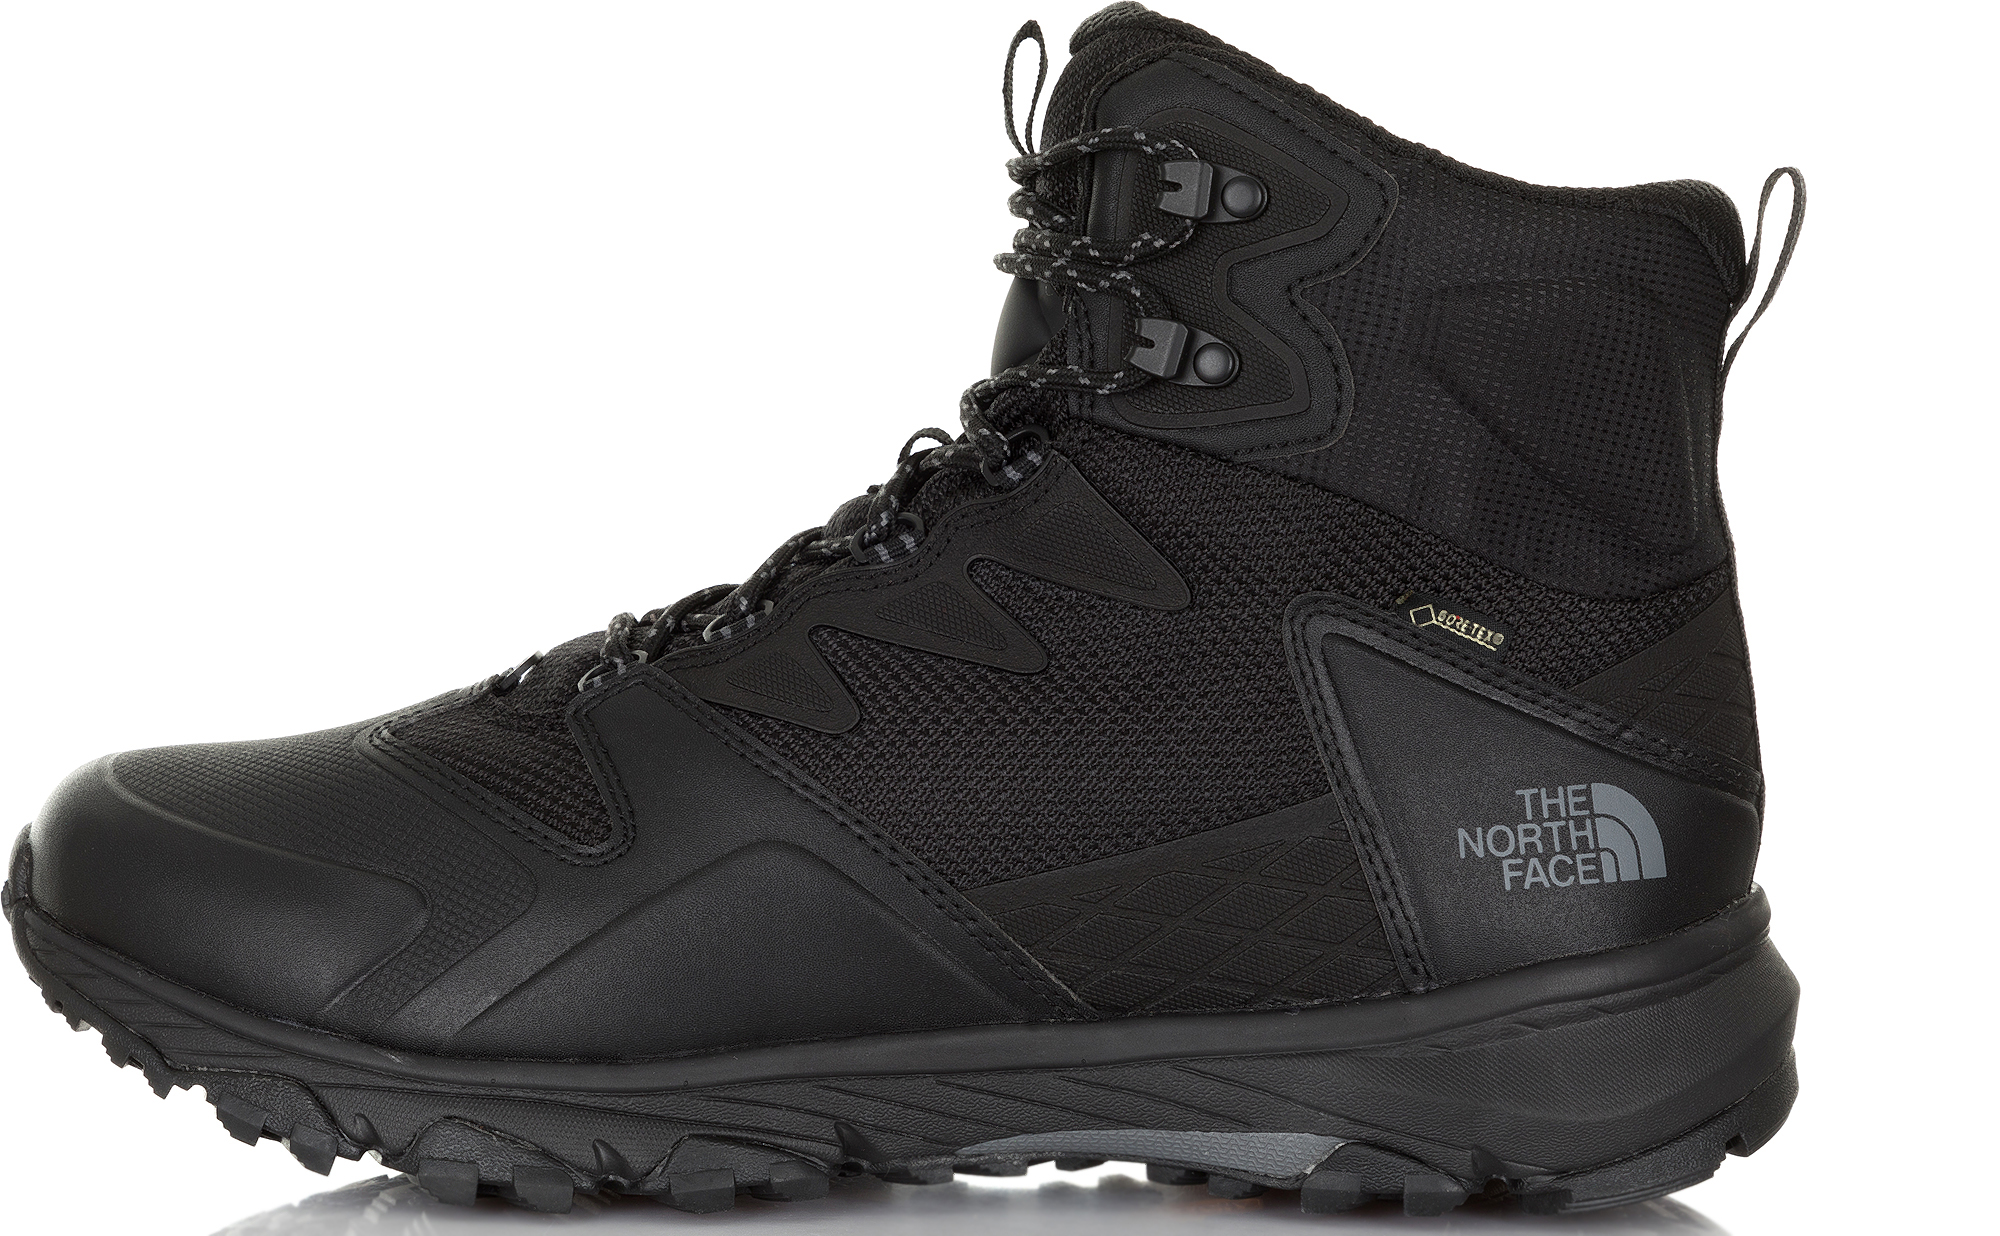 The North Face Ботинки утепленные мужские The North Face Ultra XC GTX, размер 44 ботинки the north face the north face edgewood 7